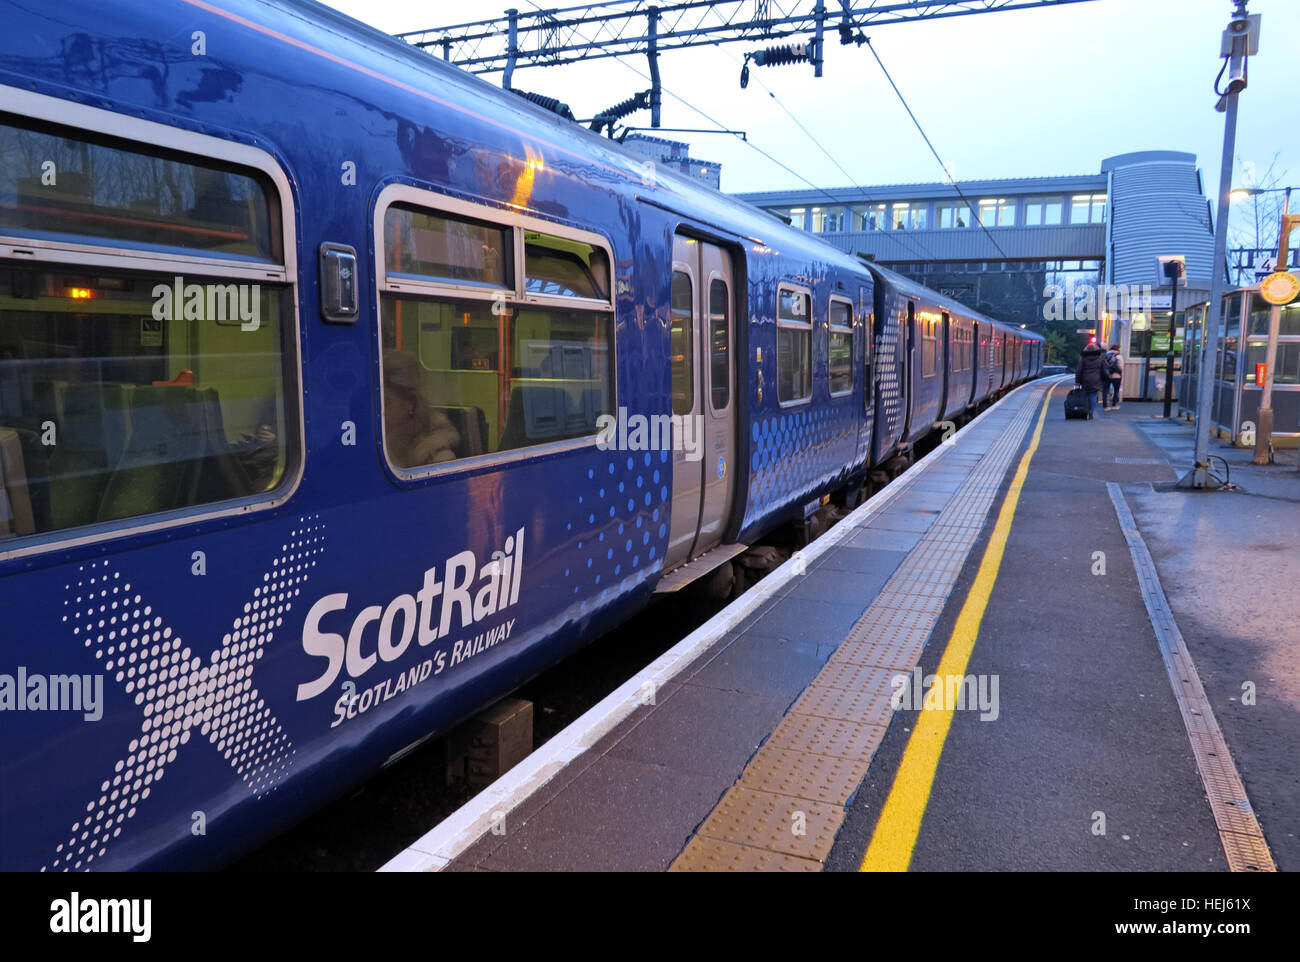 Scotrail Abellio train carriages in Motherwell station at dusk. - Stock Image